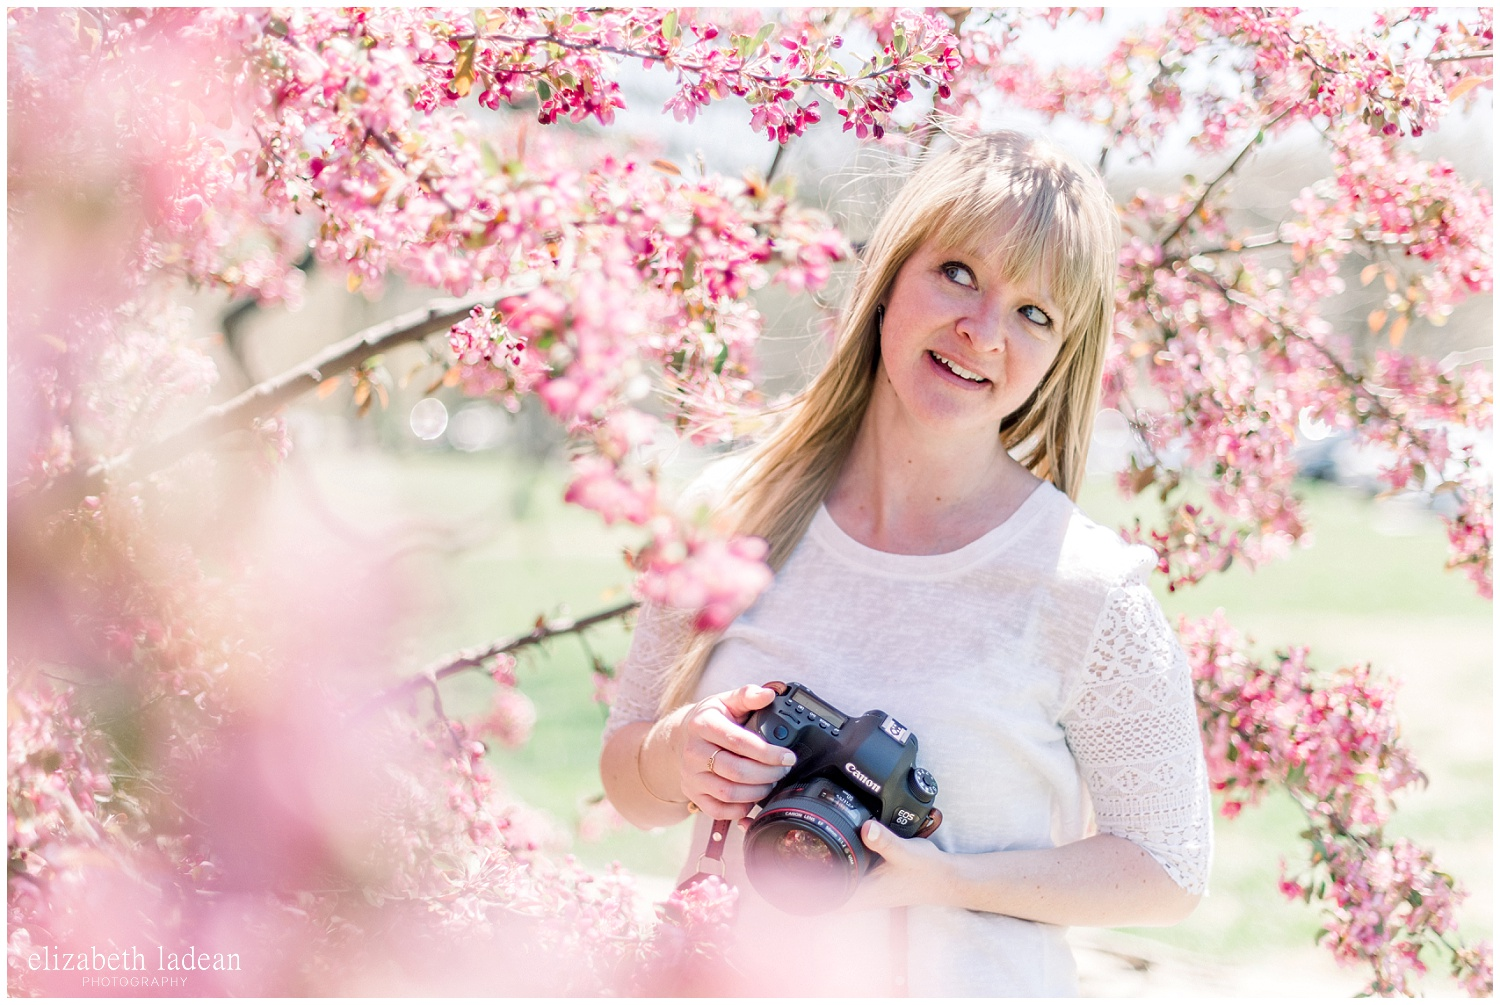 -behind-the-scenes-of-a-wedding-photographer-2018-elizabeth-ladean-photography-photo_3627.jpg